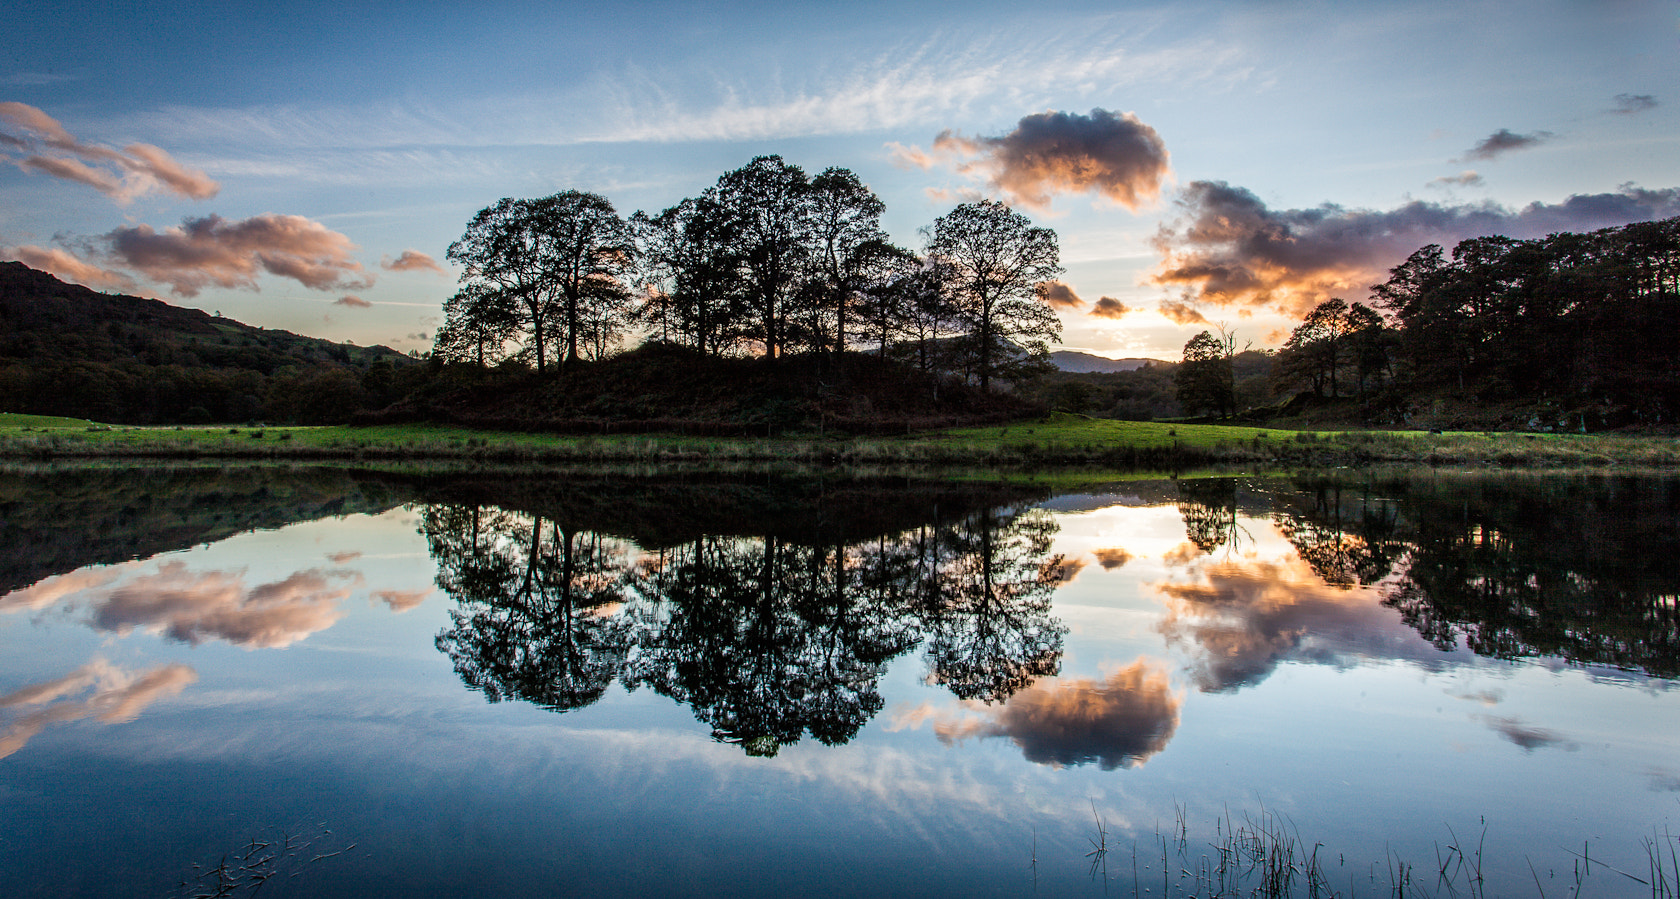 Photograph Elterwater by Okan Gűney on 500px